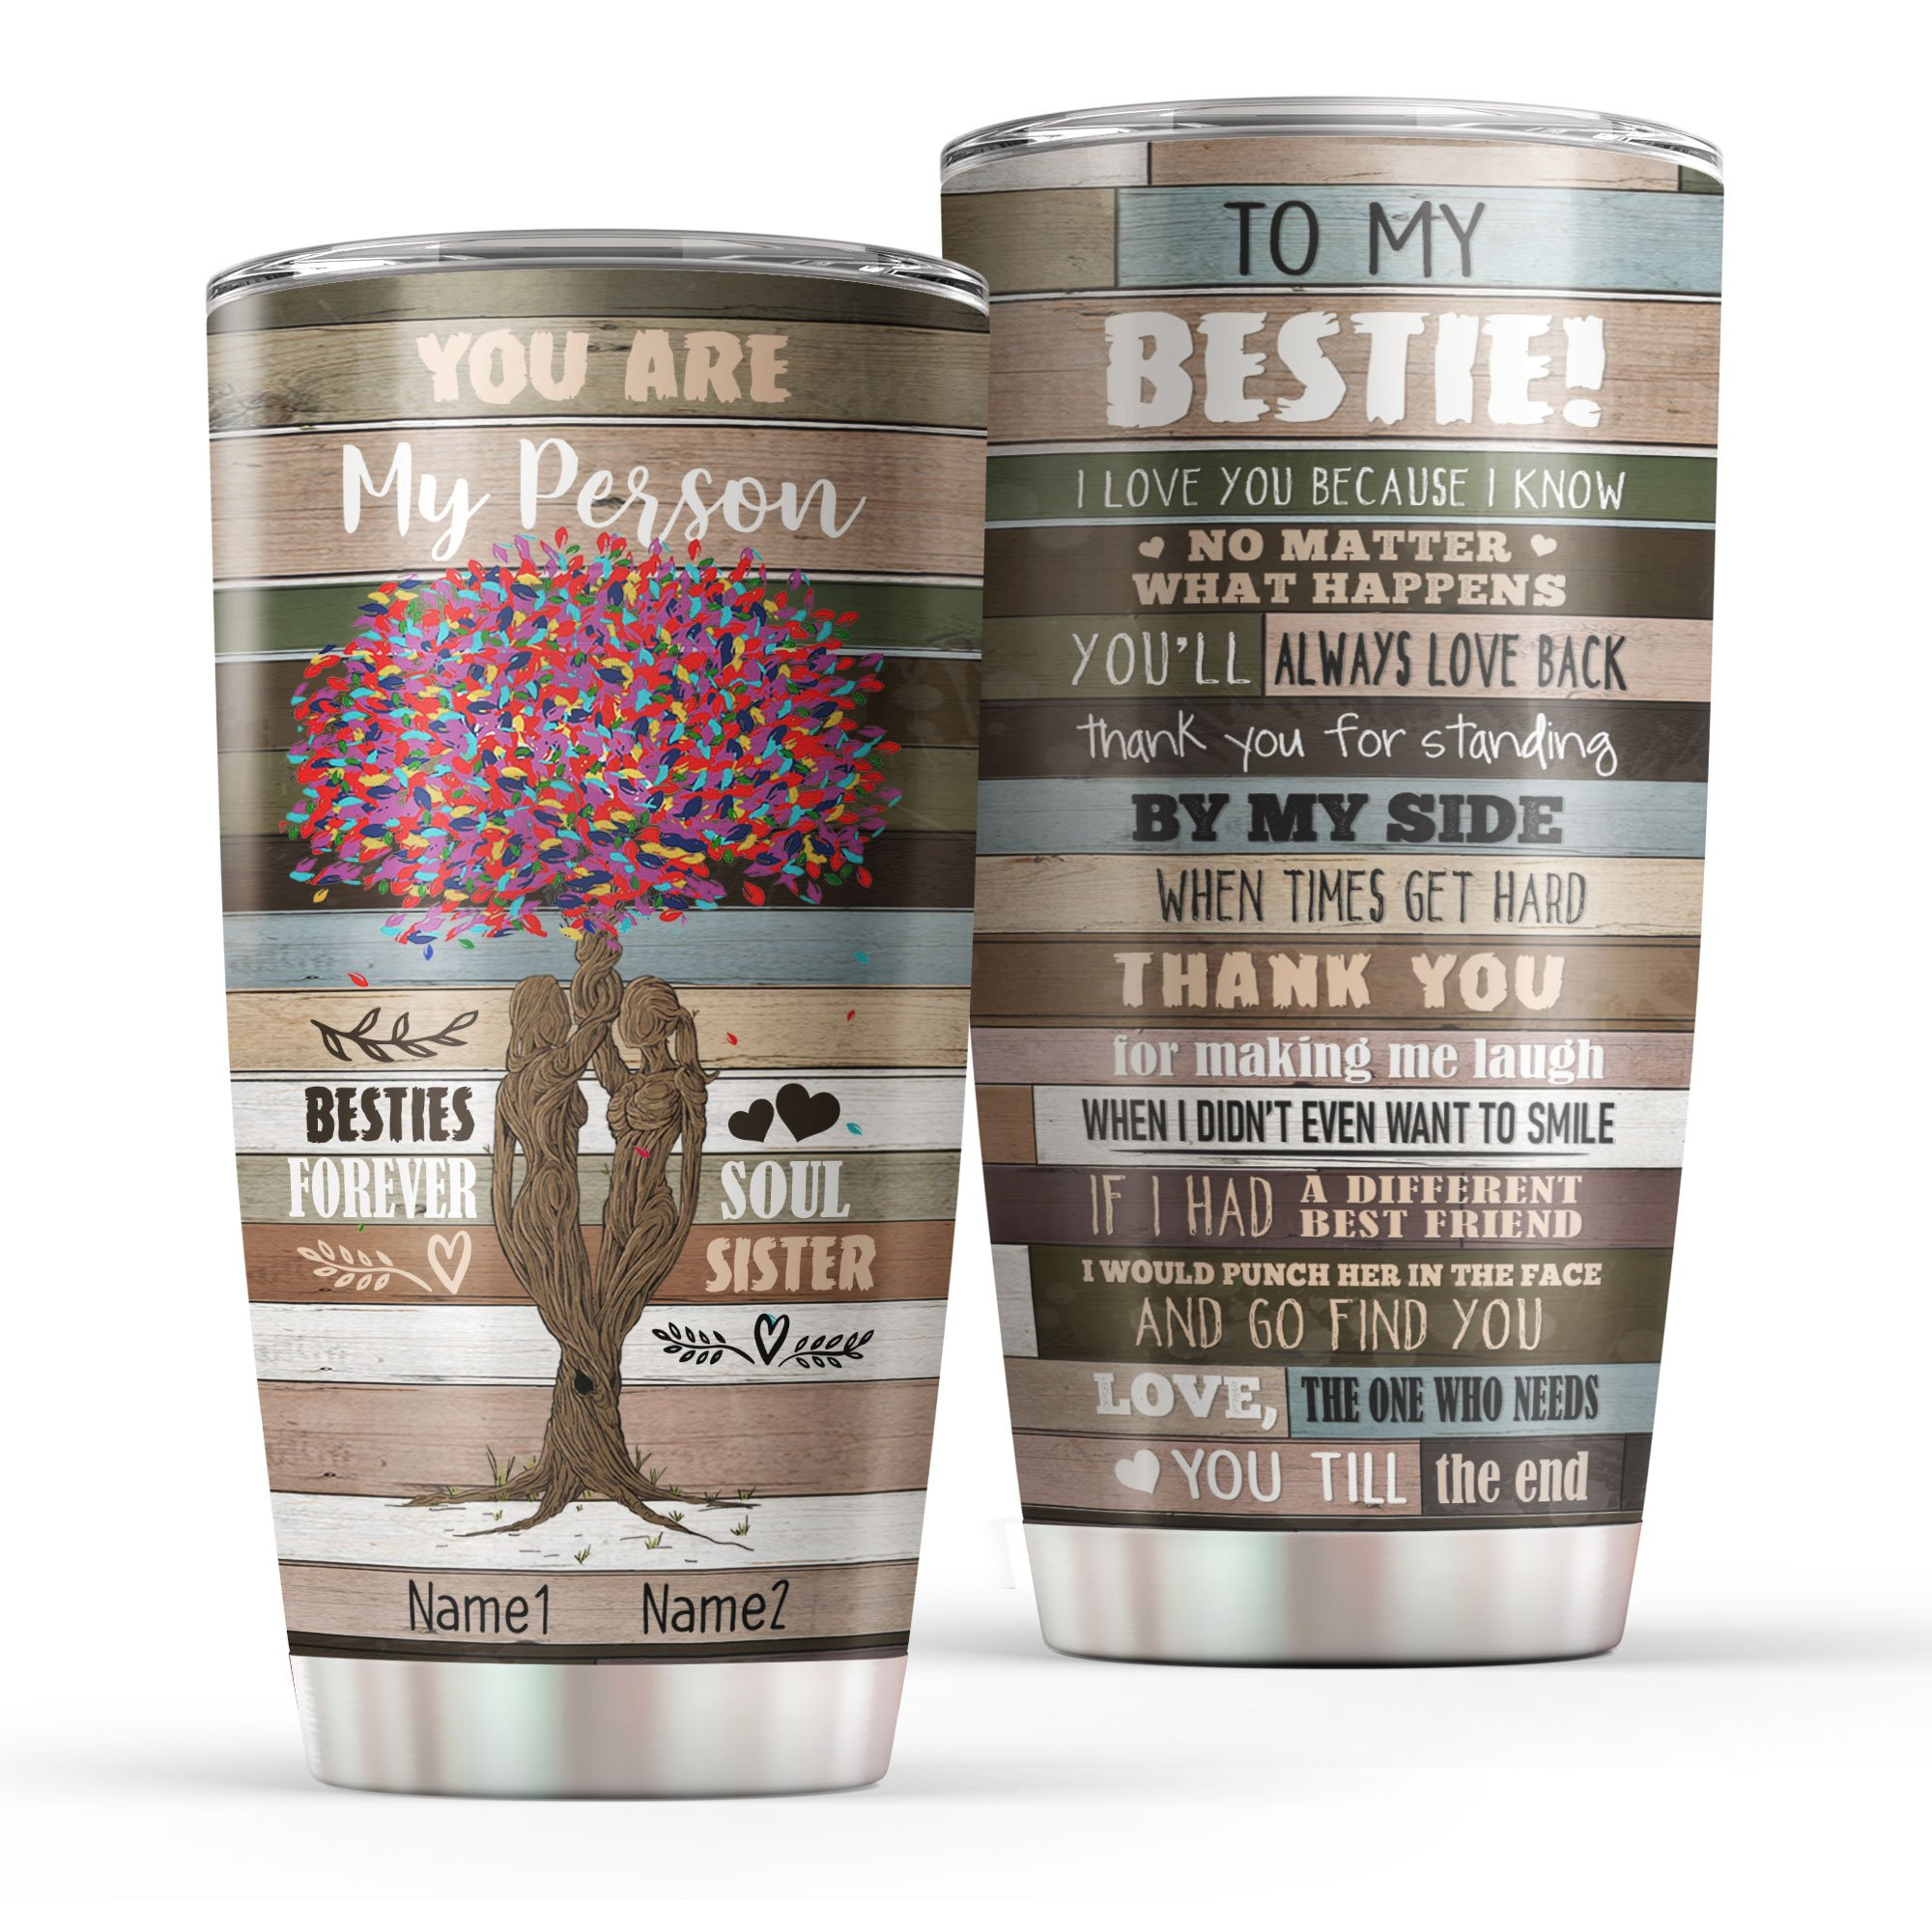 Personalized You Are My Person Besties Forever Soul Sister Tumbler Cup